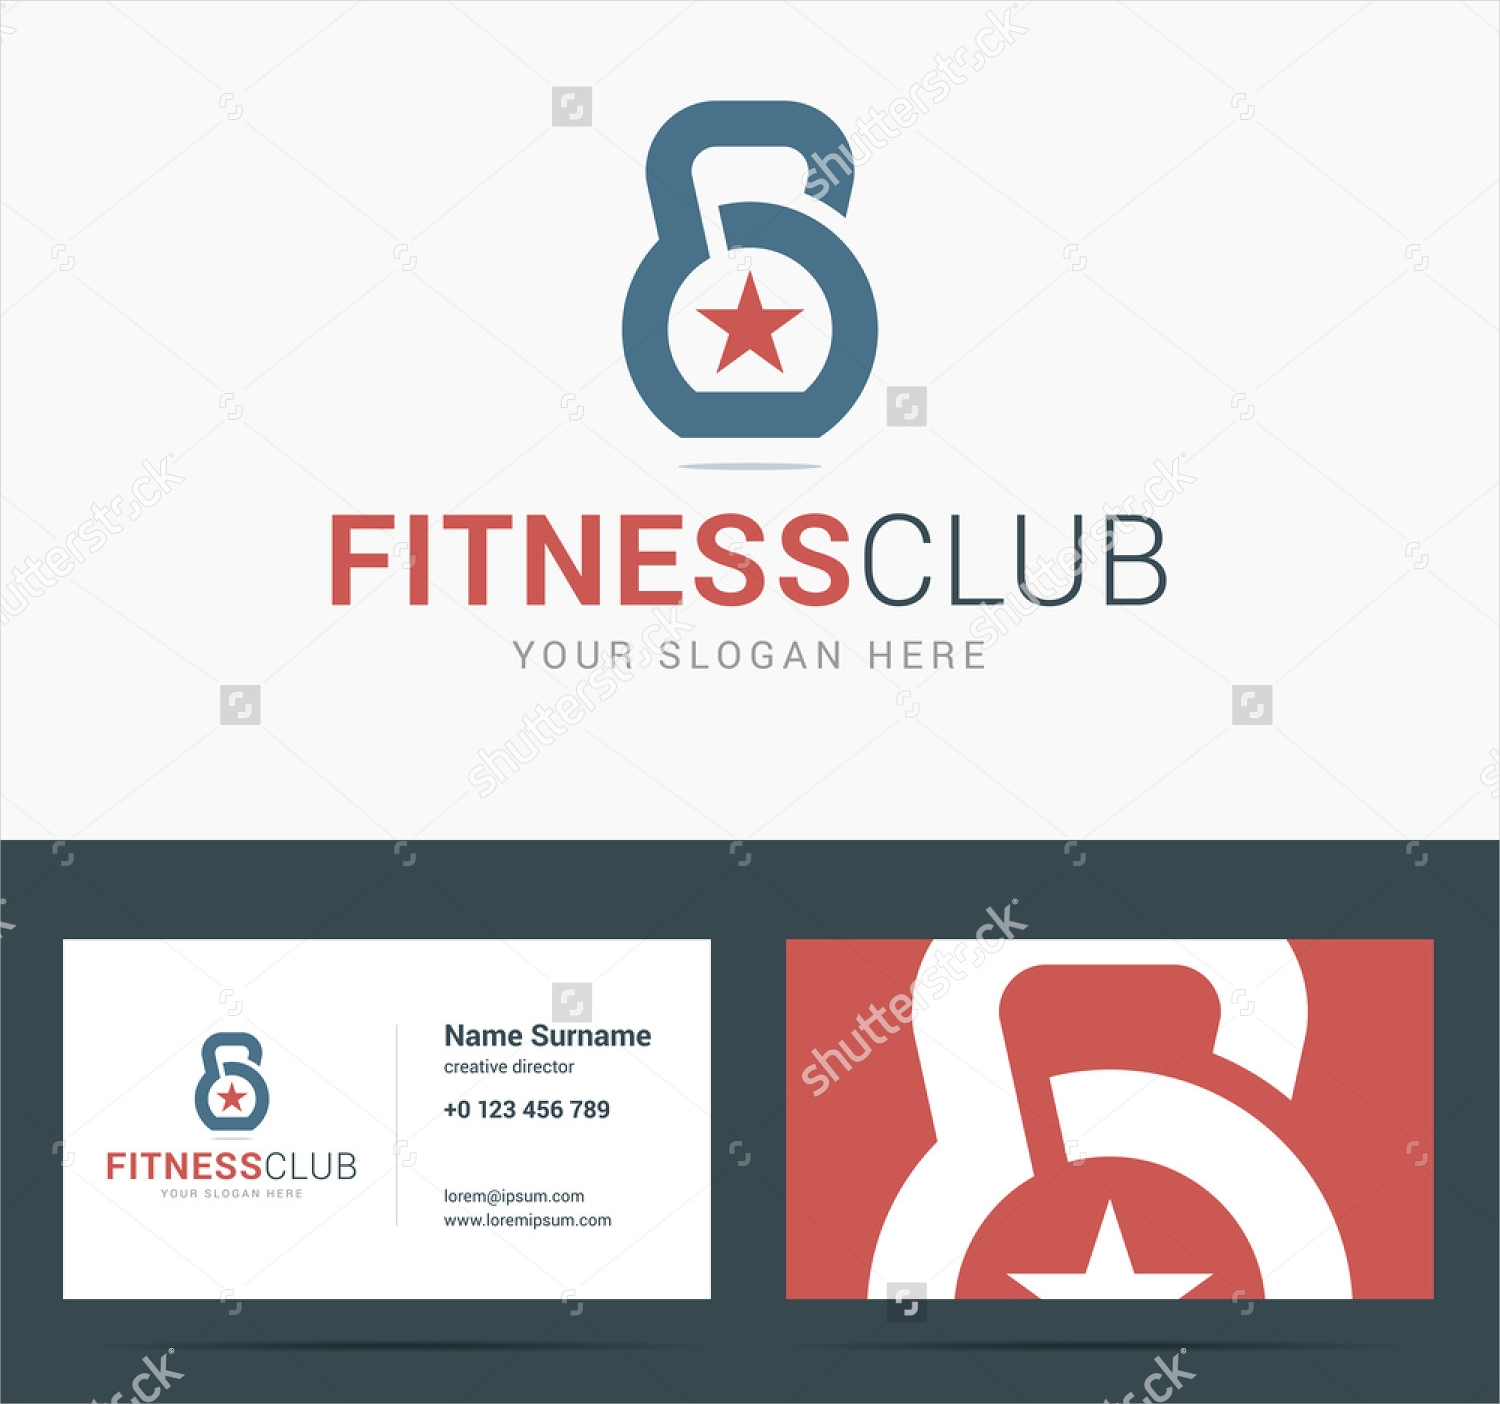 fitness business logo